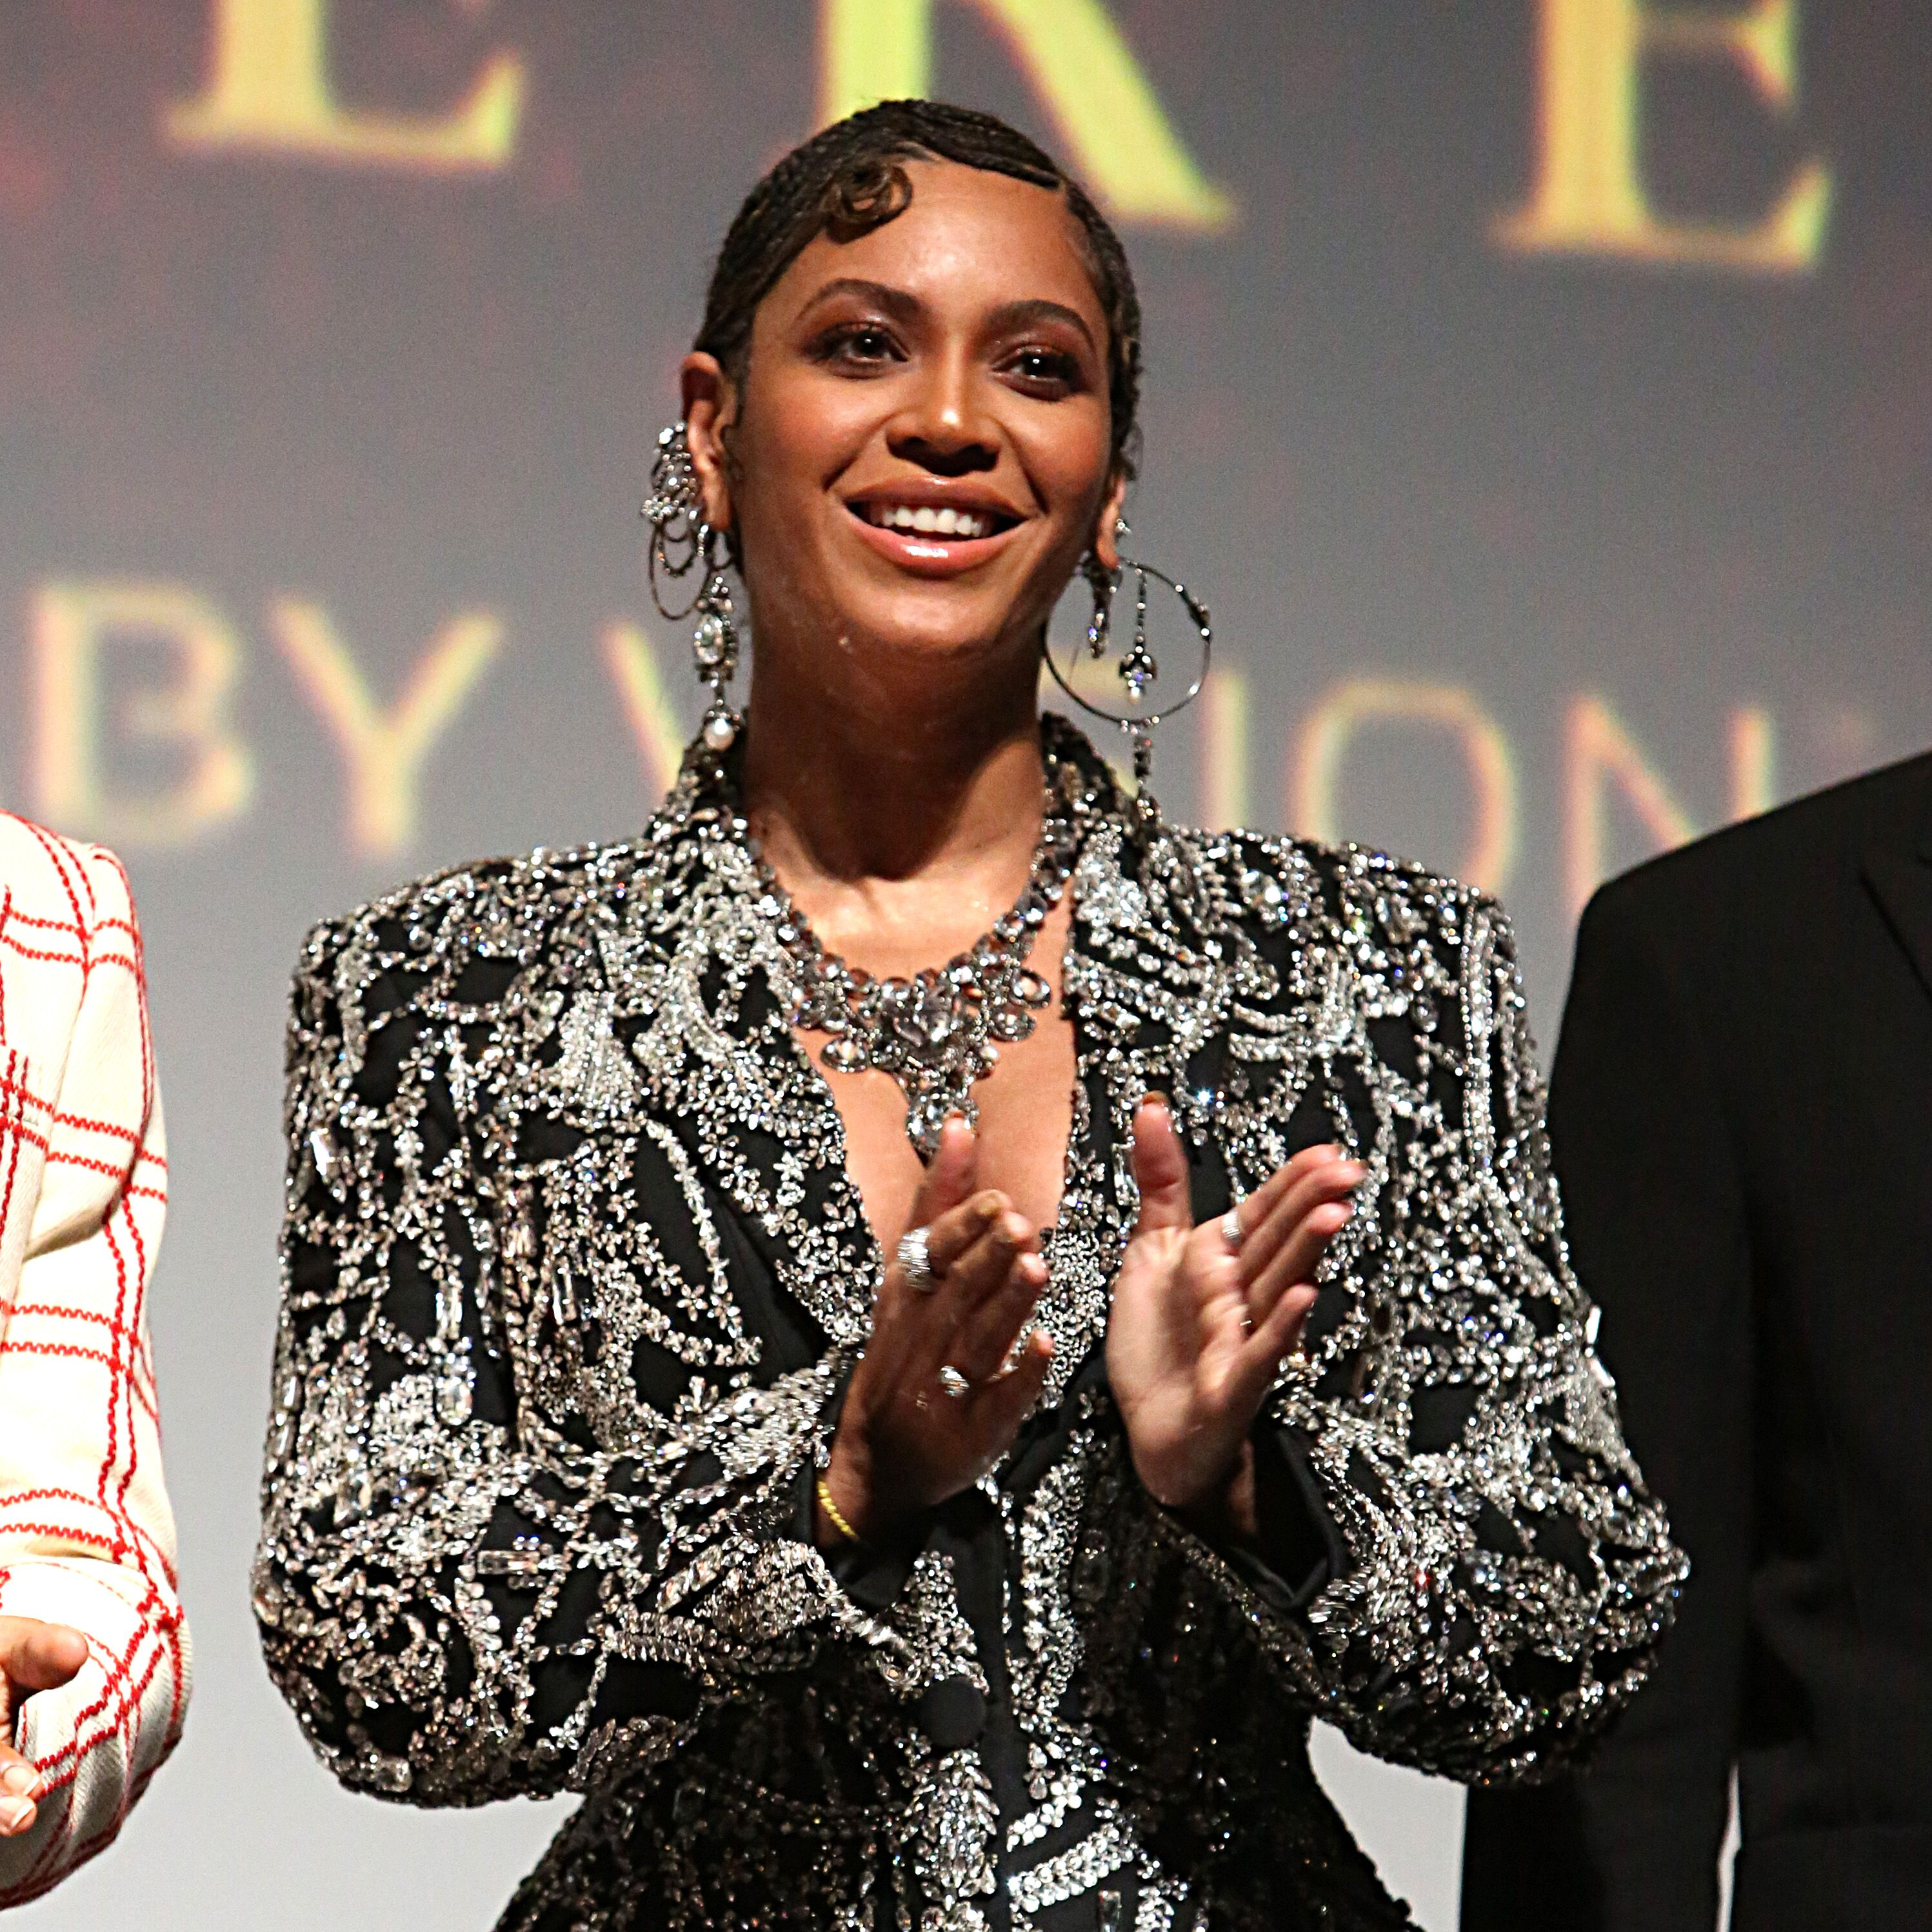 """Beyoncé Knowles in a Alexander McQueen beaded gown at the """"Lion King"""" premiere/ Source: Getty Images"""